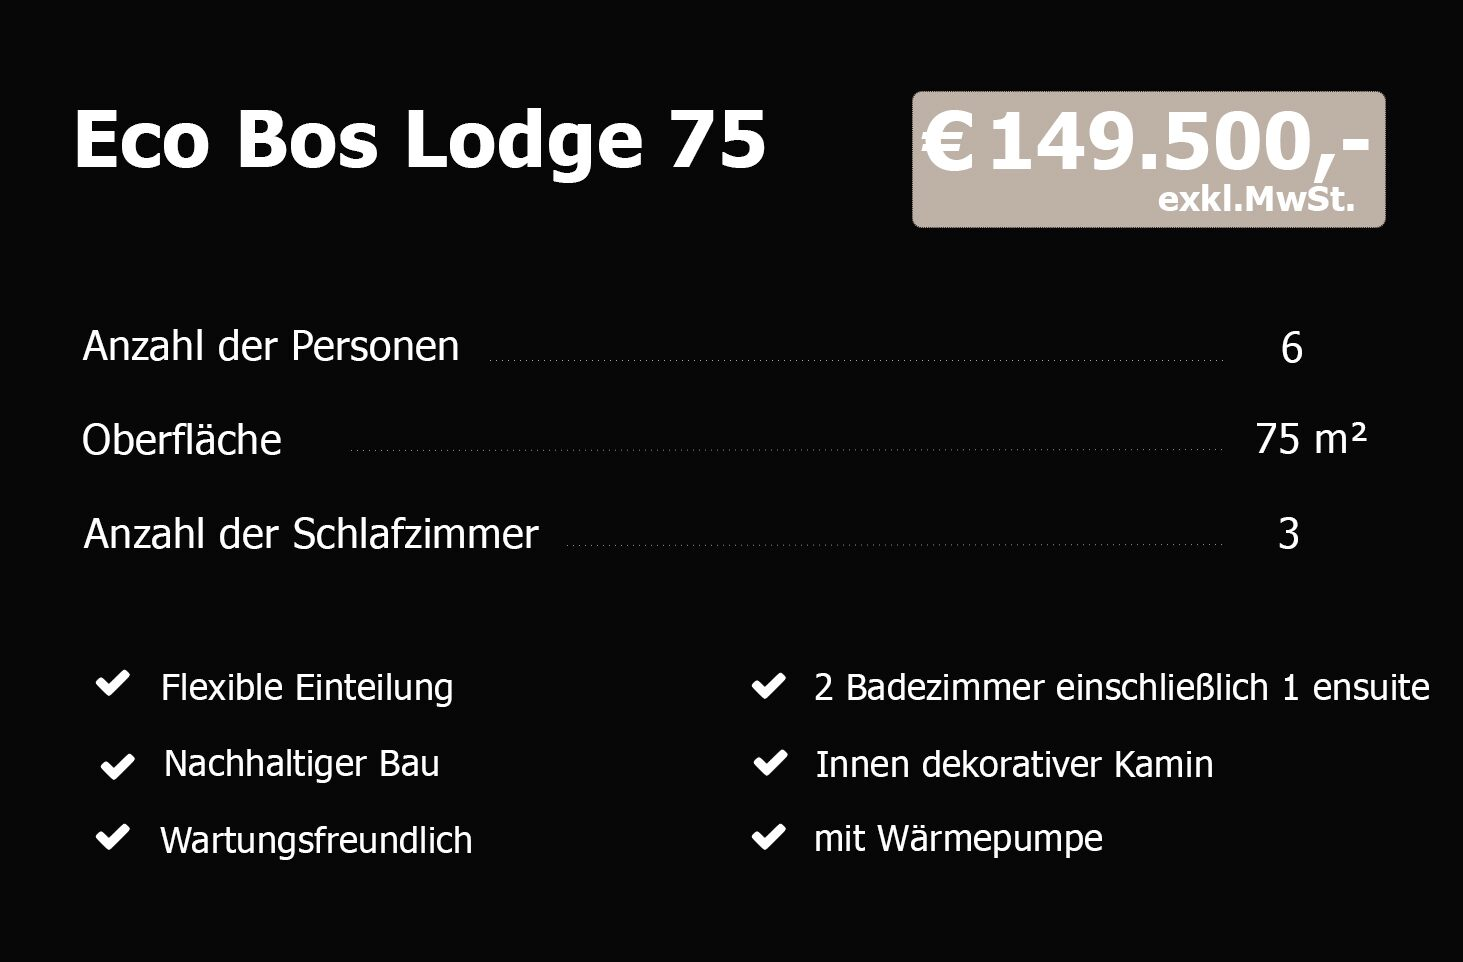 Eco Bos Lodge 75